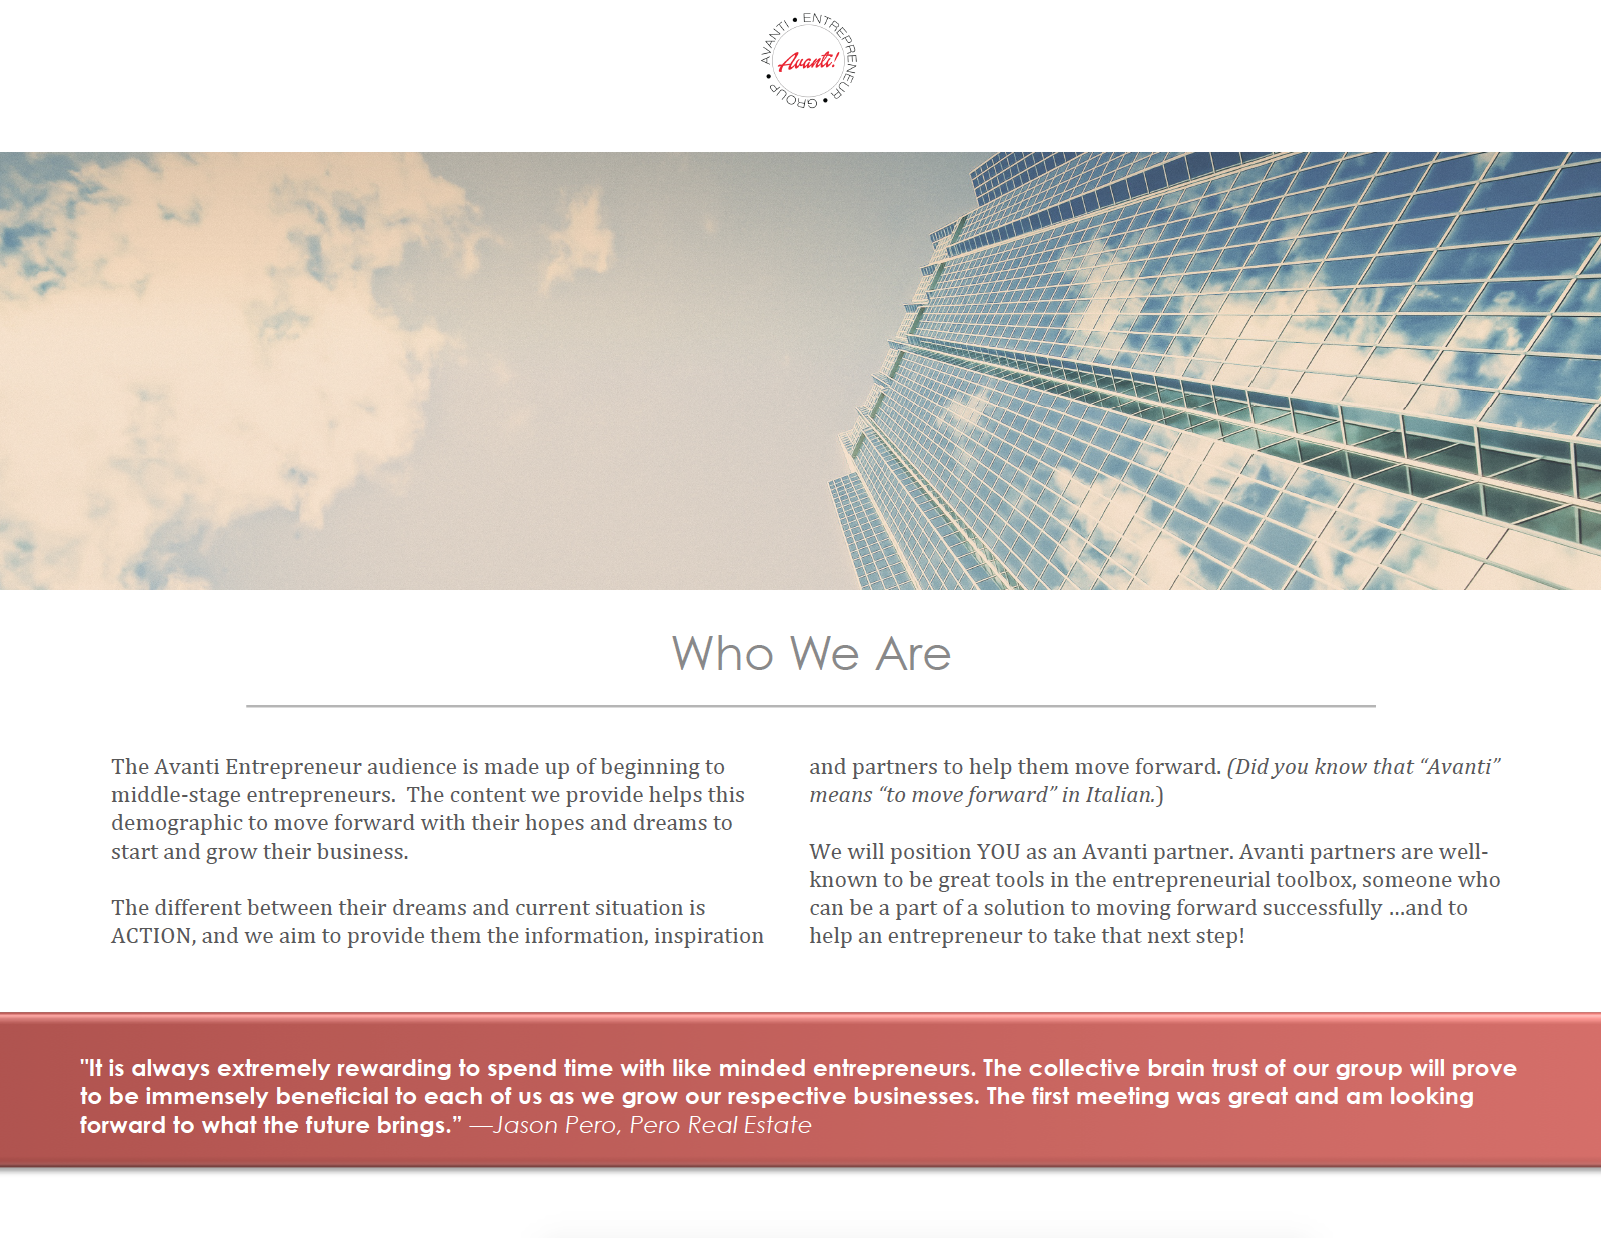 Avanti Entrepreneur Group: Who We Are